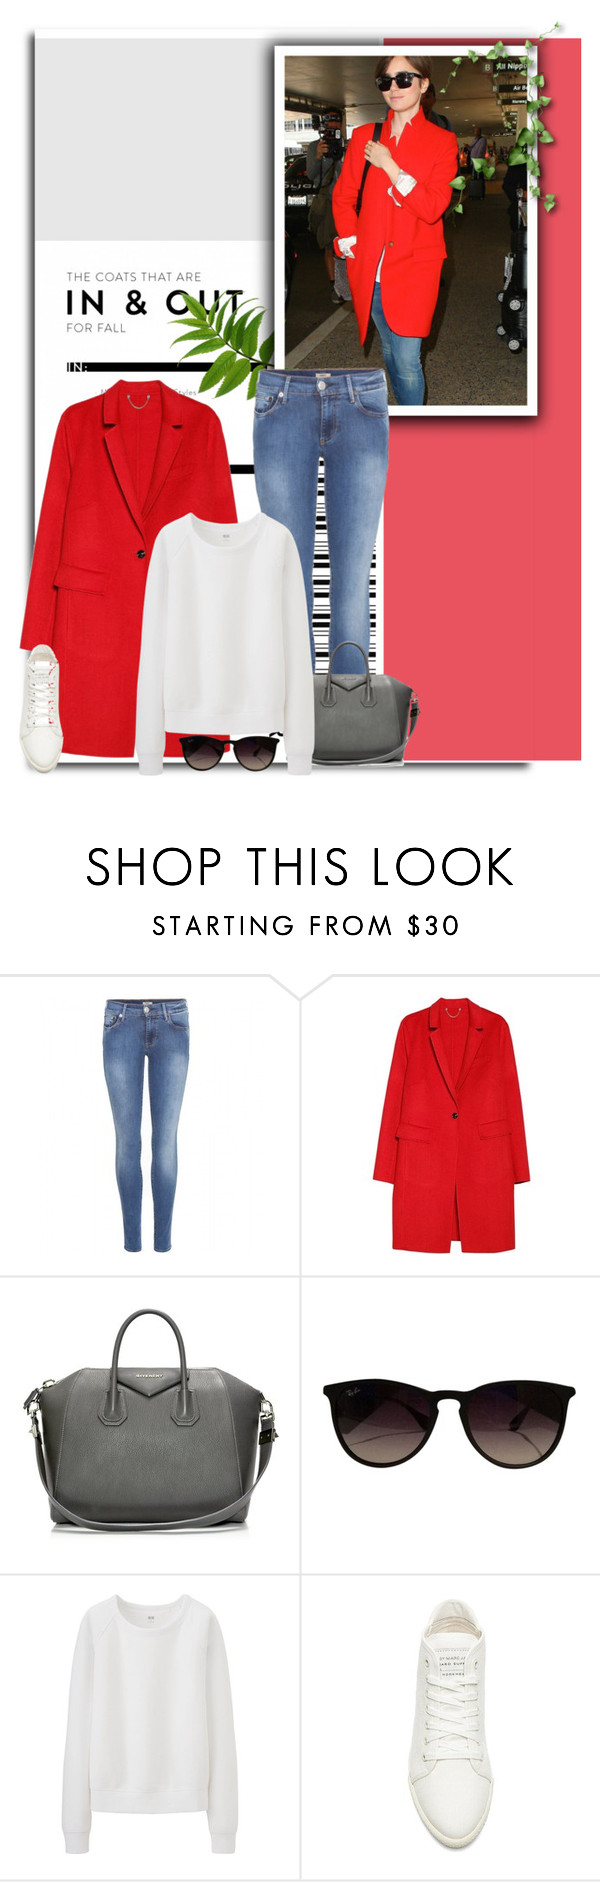 """""""792"""" by melanie-avni ❤ liked on Polyvore featuring True Religion, Violeta by Mango, Givenchy, Ray-Ban, Uniqlo and Marc by Marc Jacobs"""